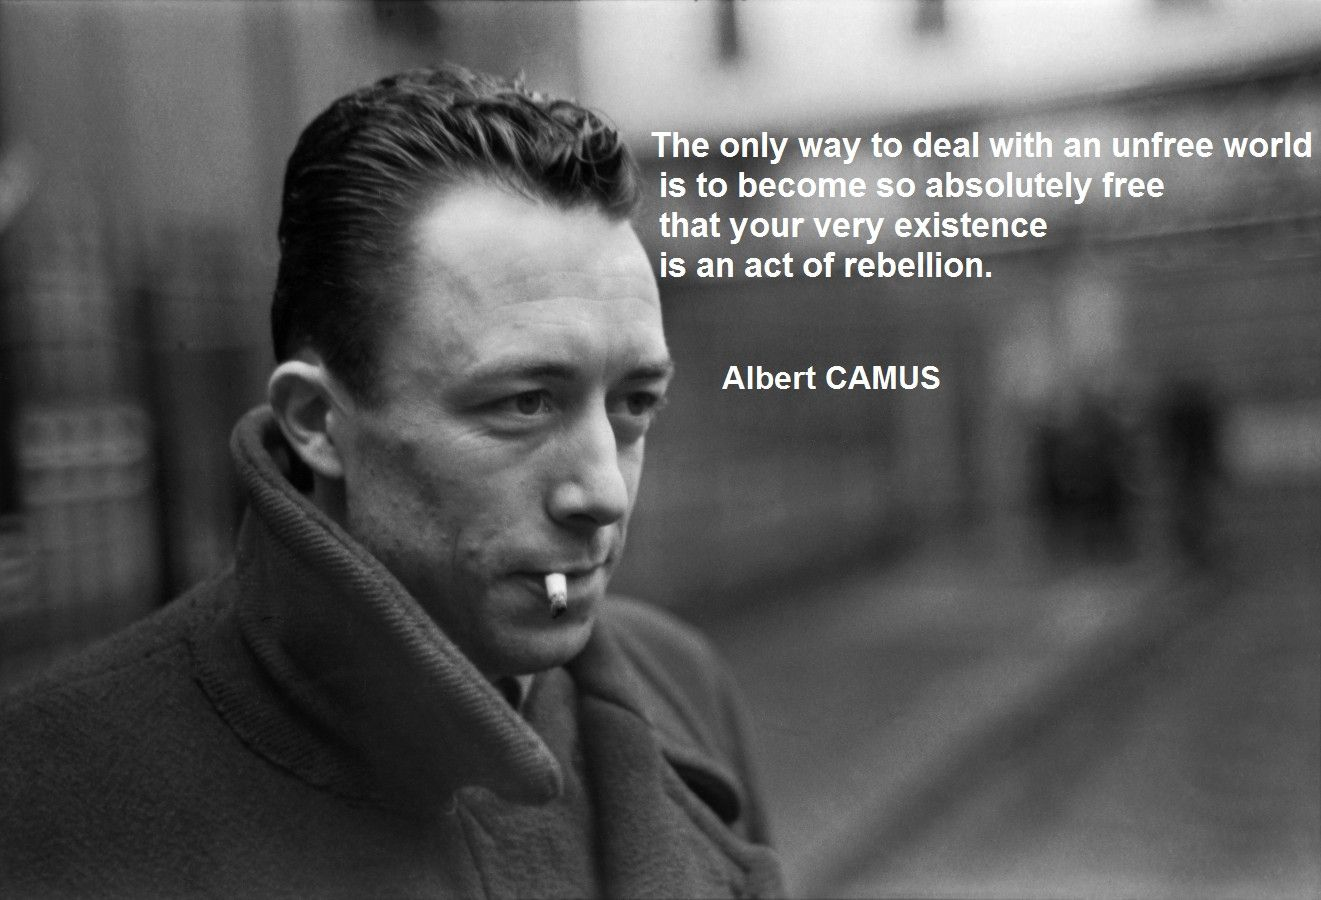 Albert camus quote about unique normal energy different -  The Only Way To Deal With An Unfree World Is To Become So Absolutely Free That Your Very Existence Is An Act Of Rebellion By Albert Camus